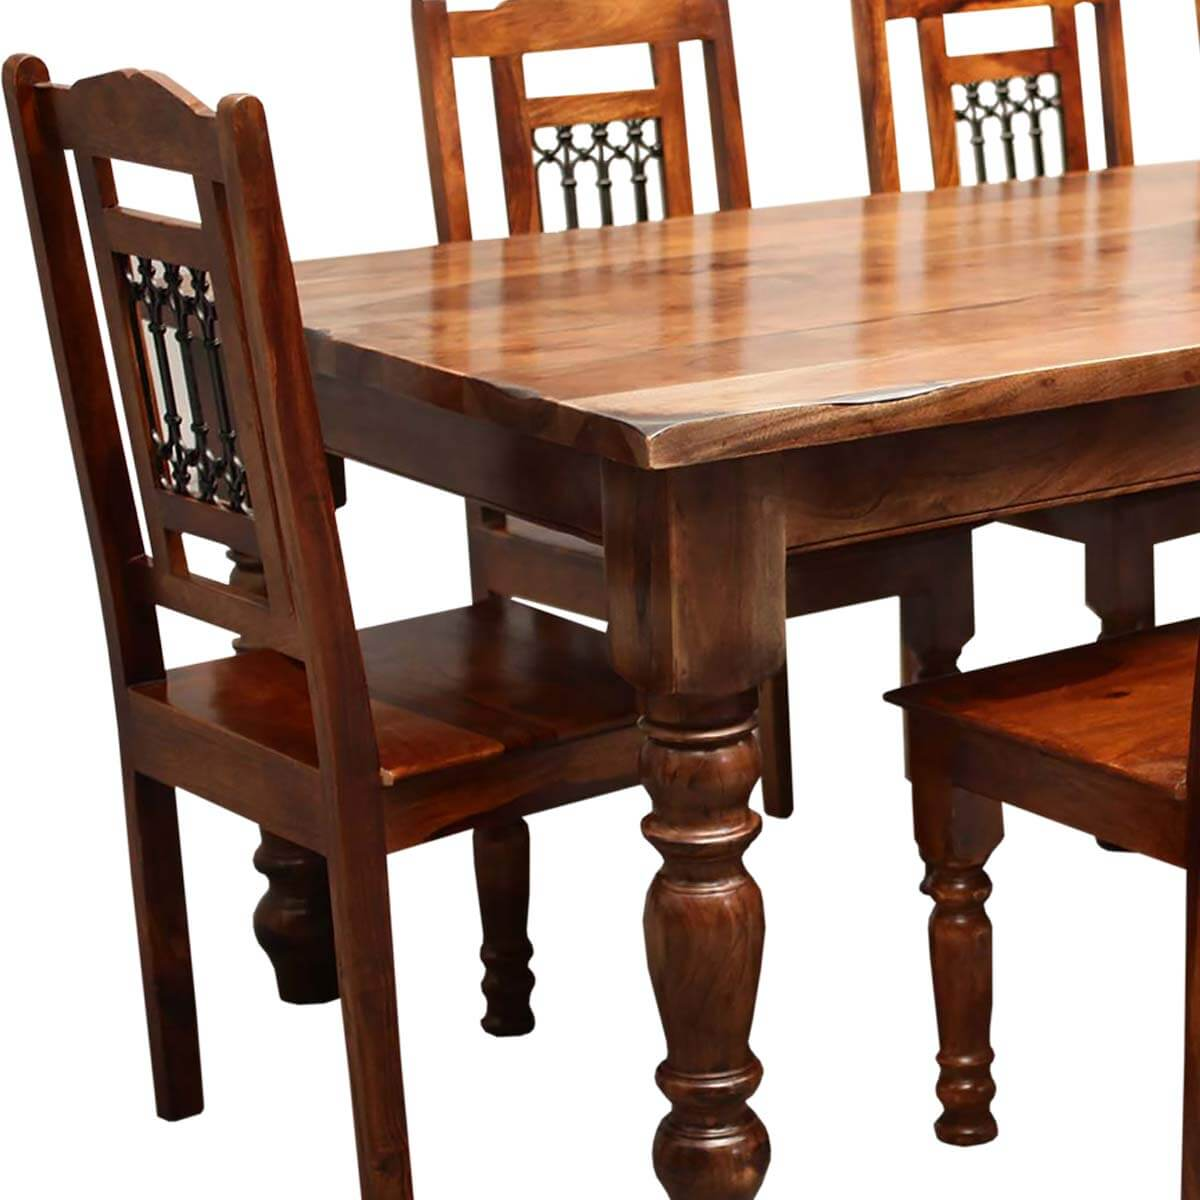 Wooden Dining Table Set: Rustic Furniture Solid Wood Large Dining Table & 8 Chair Set